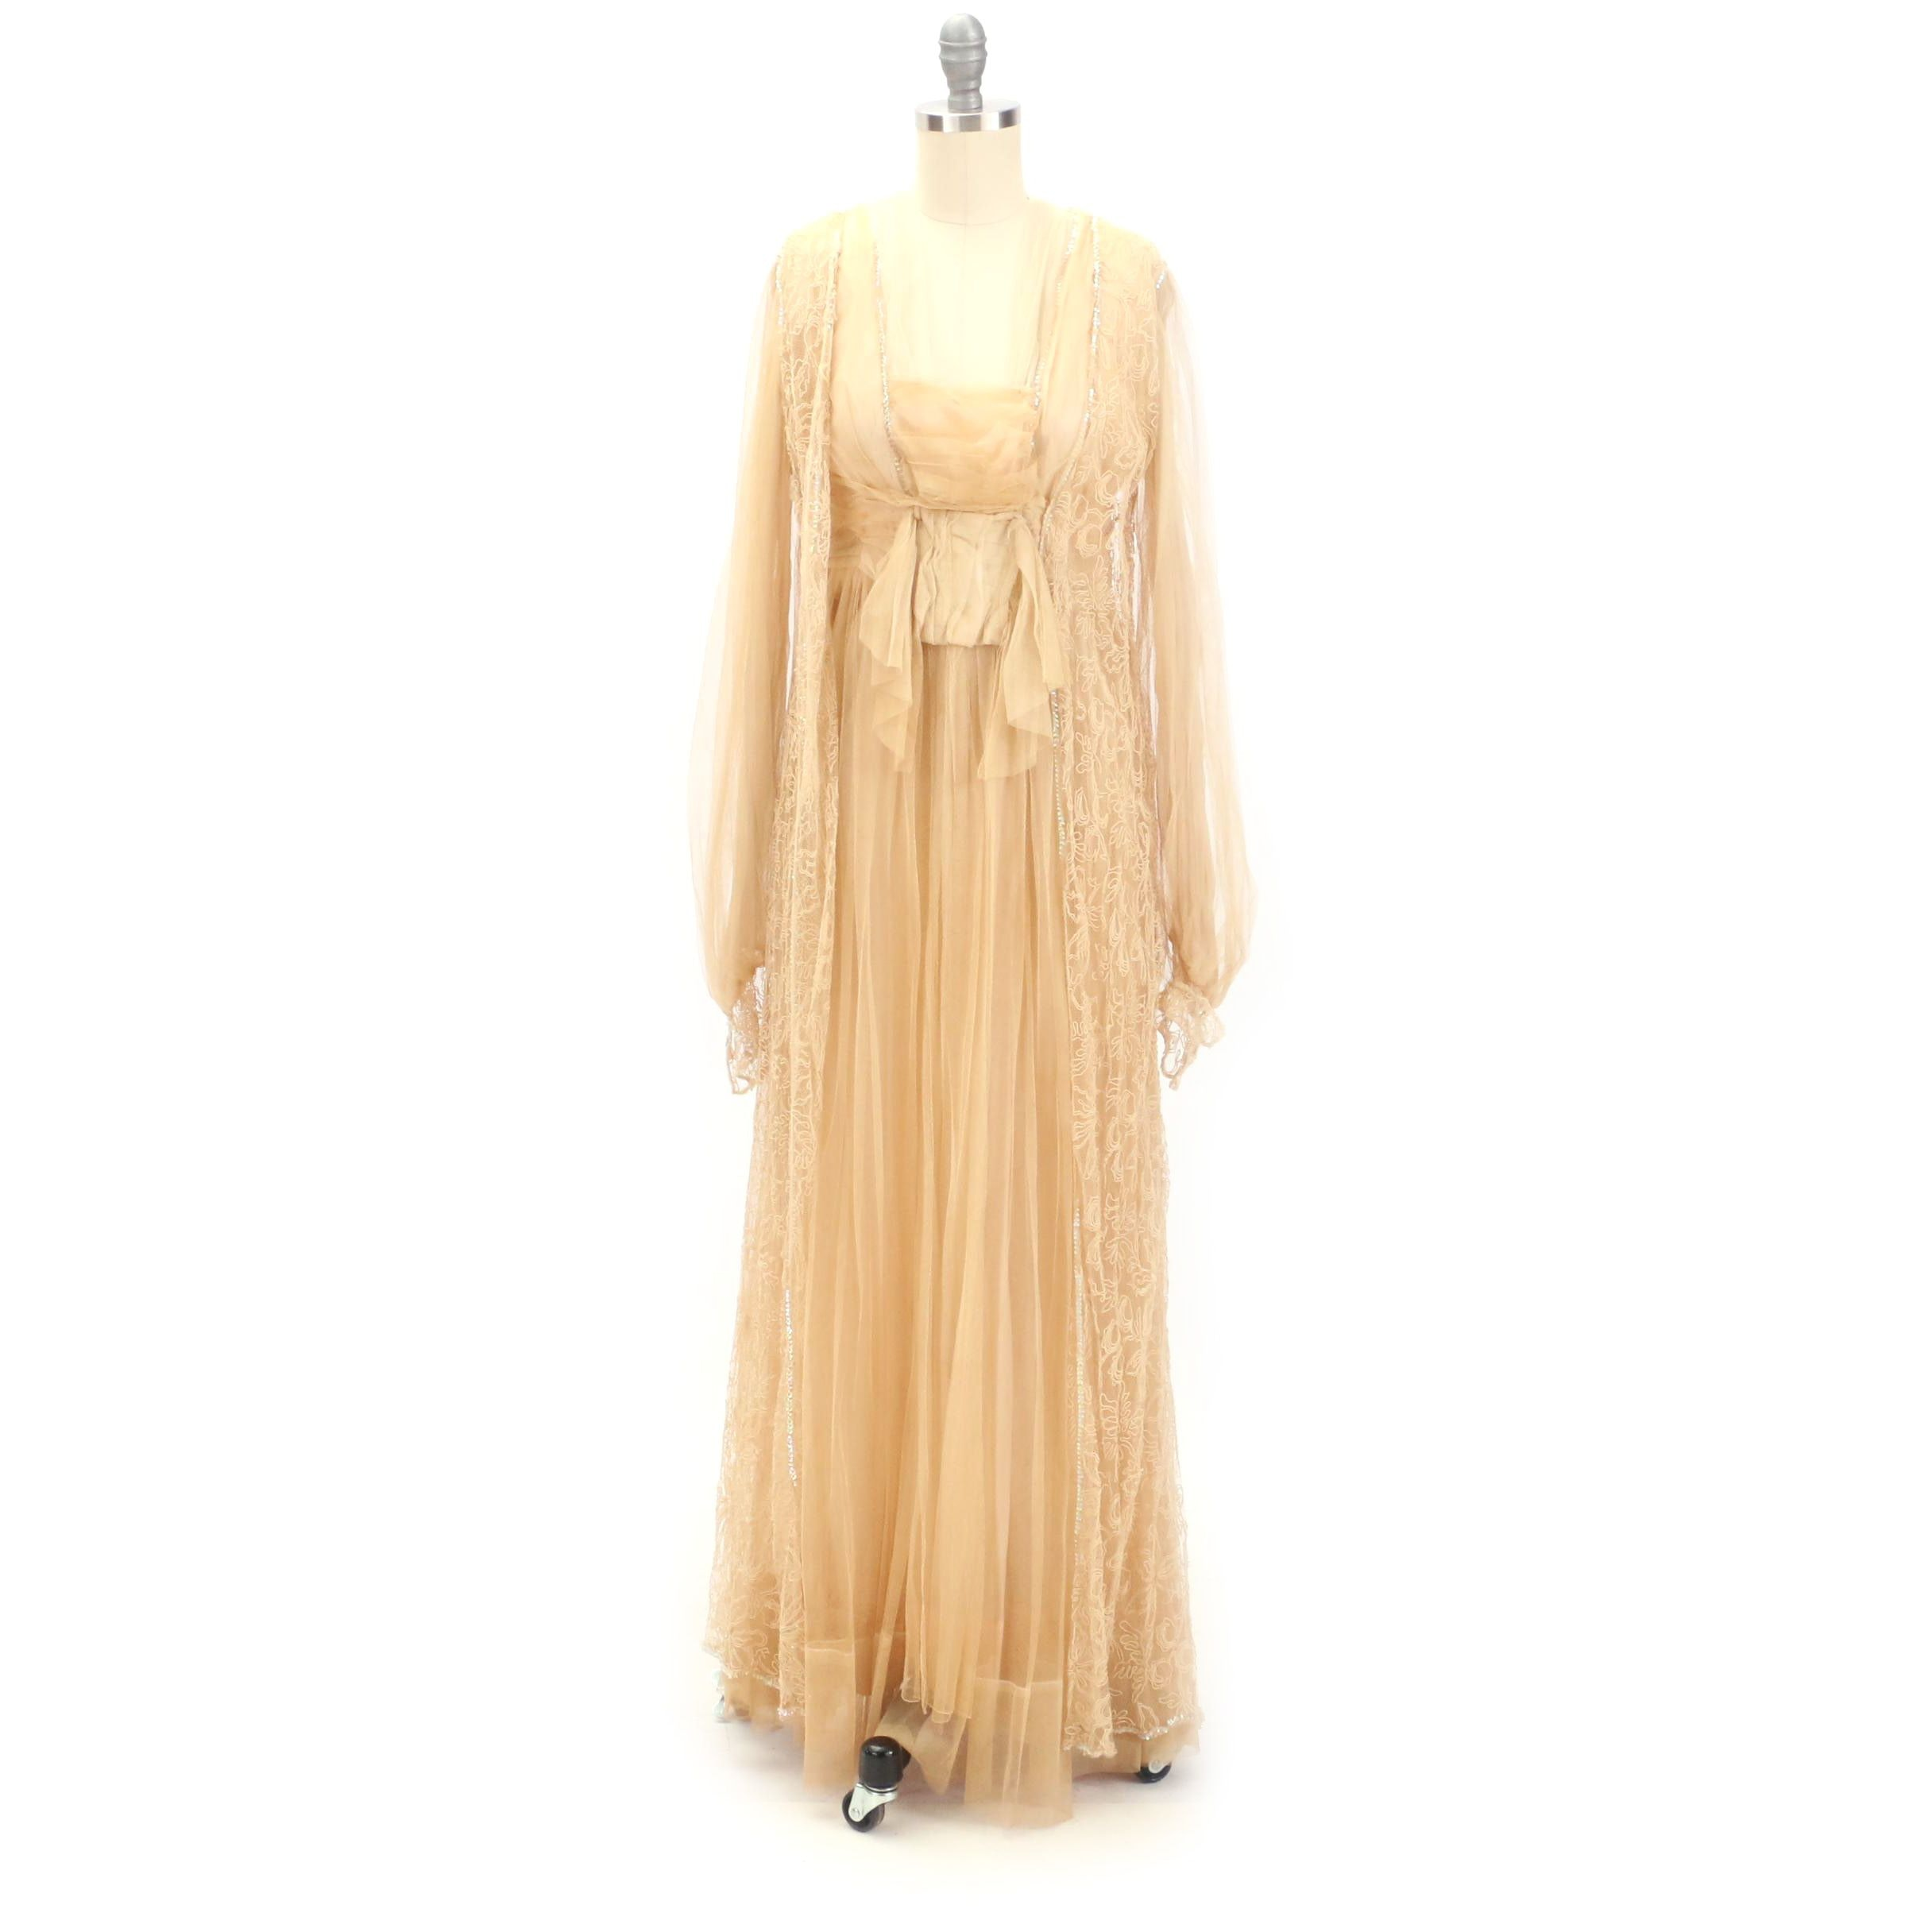 Circa 1910s Antique Edwardian Embroidered Tulle and Silk Gown